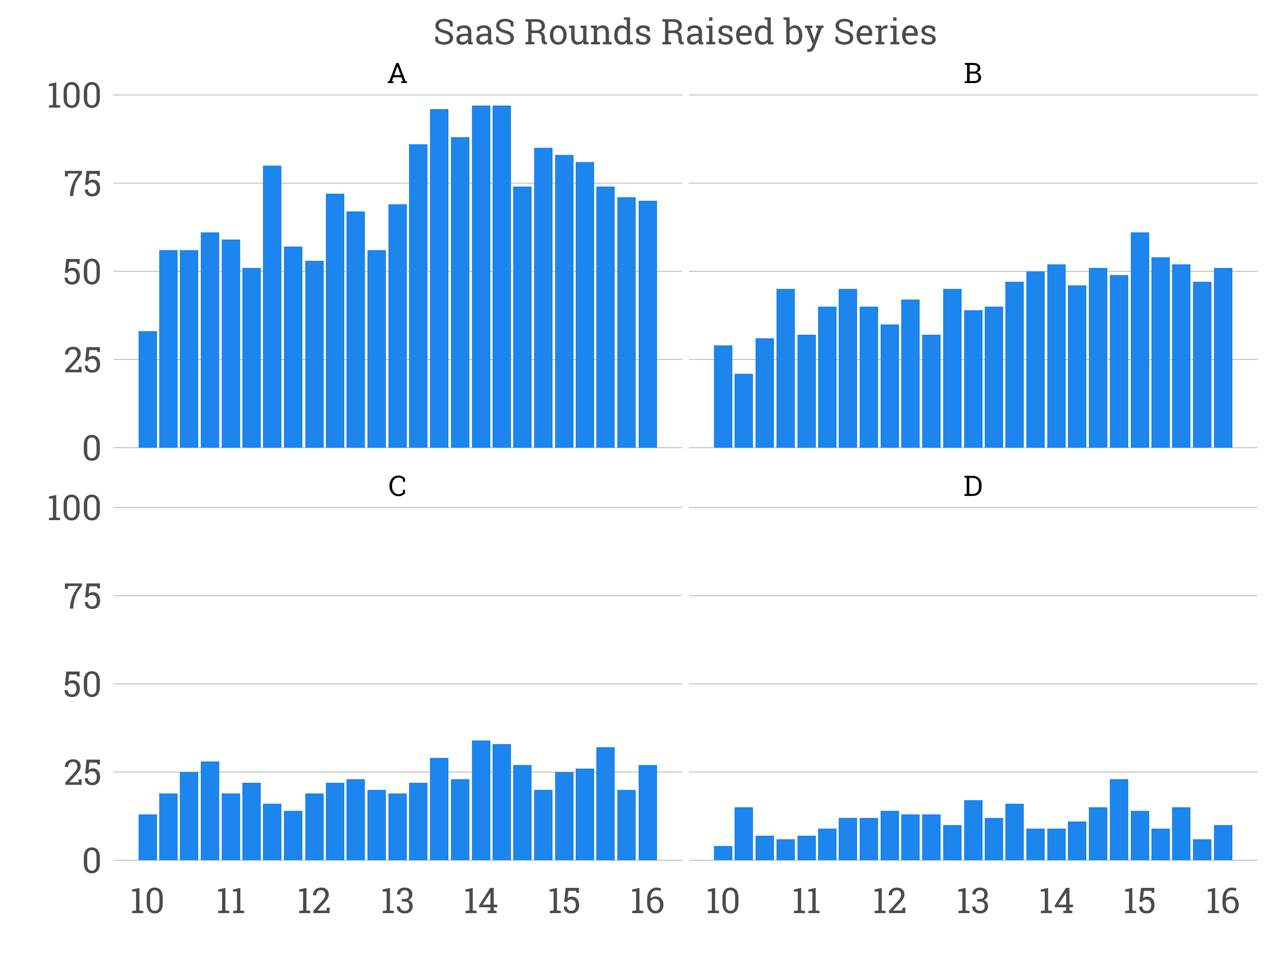 saas_rounds_by_series